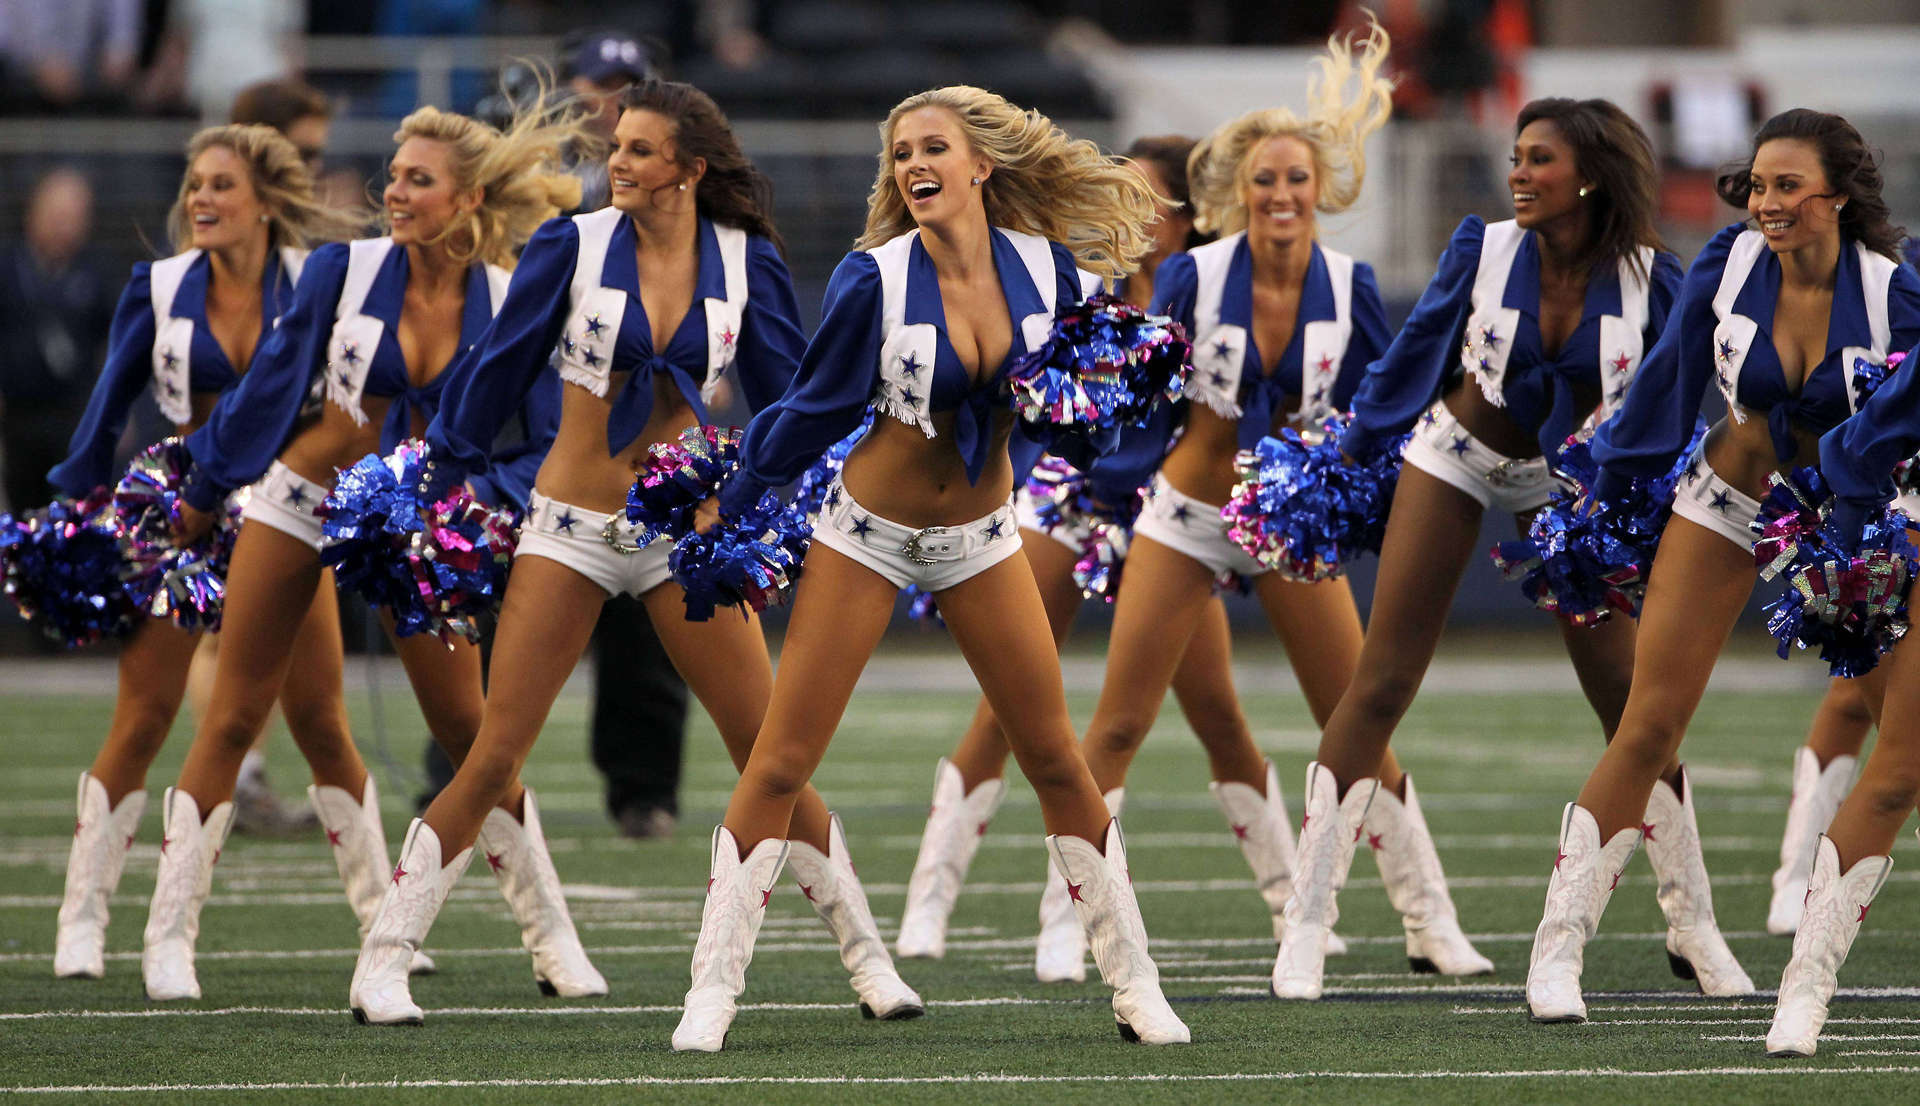 5f41d9be98a Today s highly interesting read (10 07 17)  Have you noticed NFL  cheerleaders haven t taken a knee